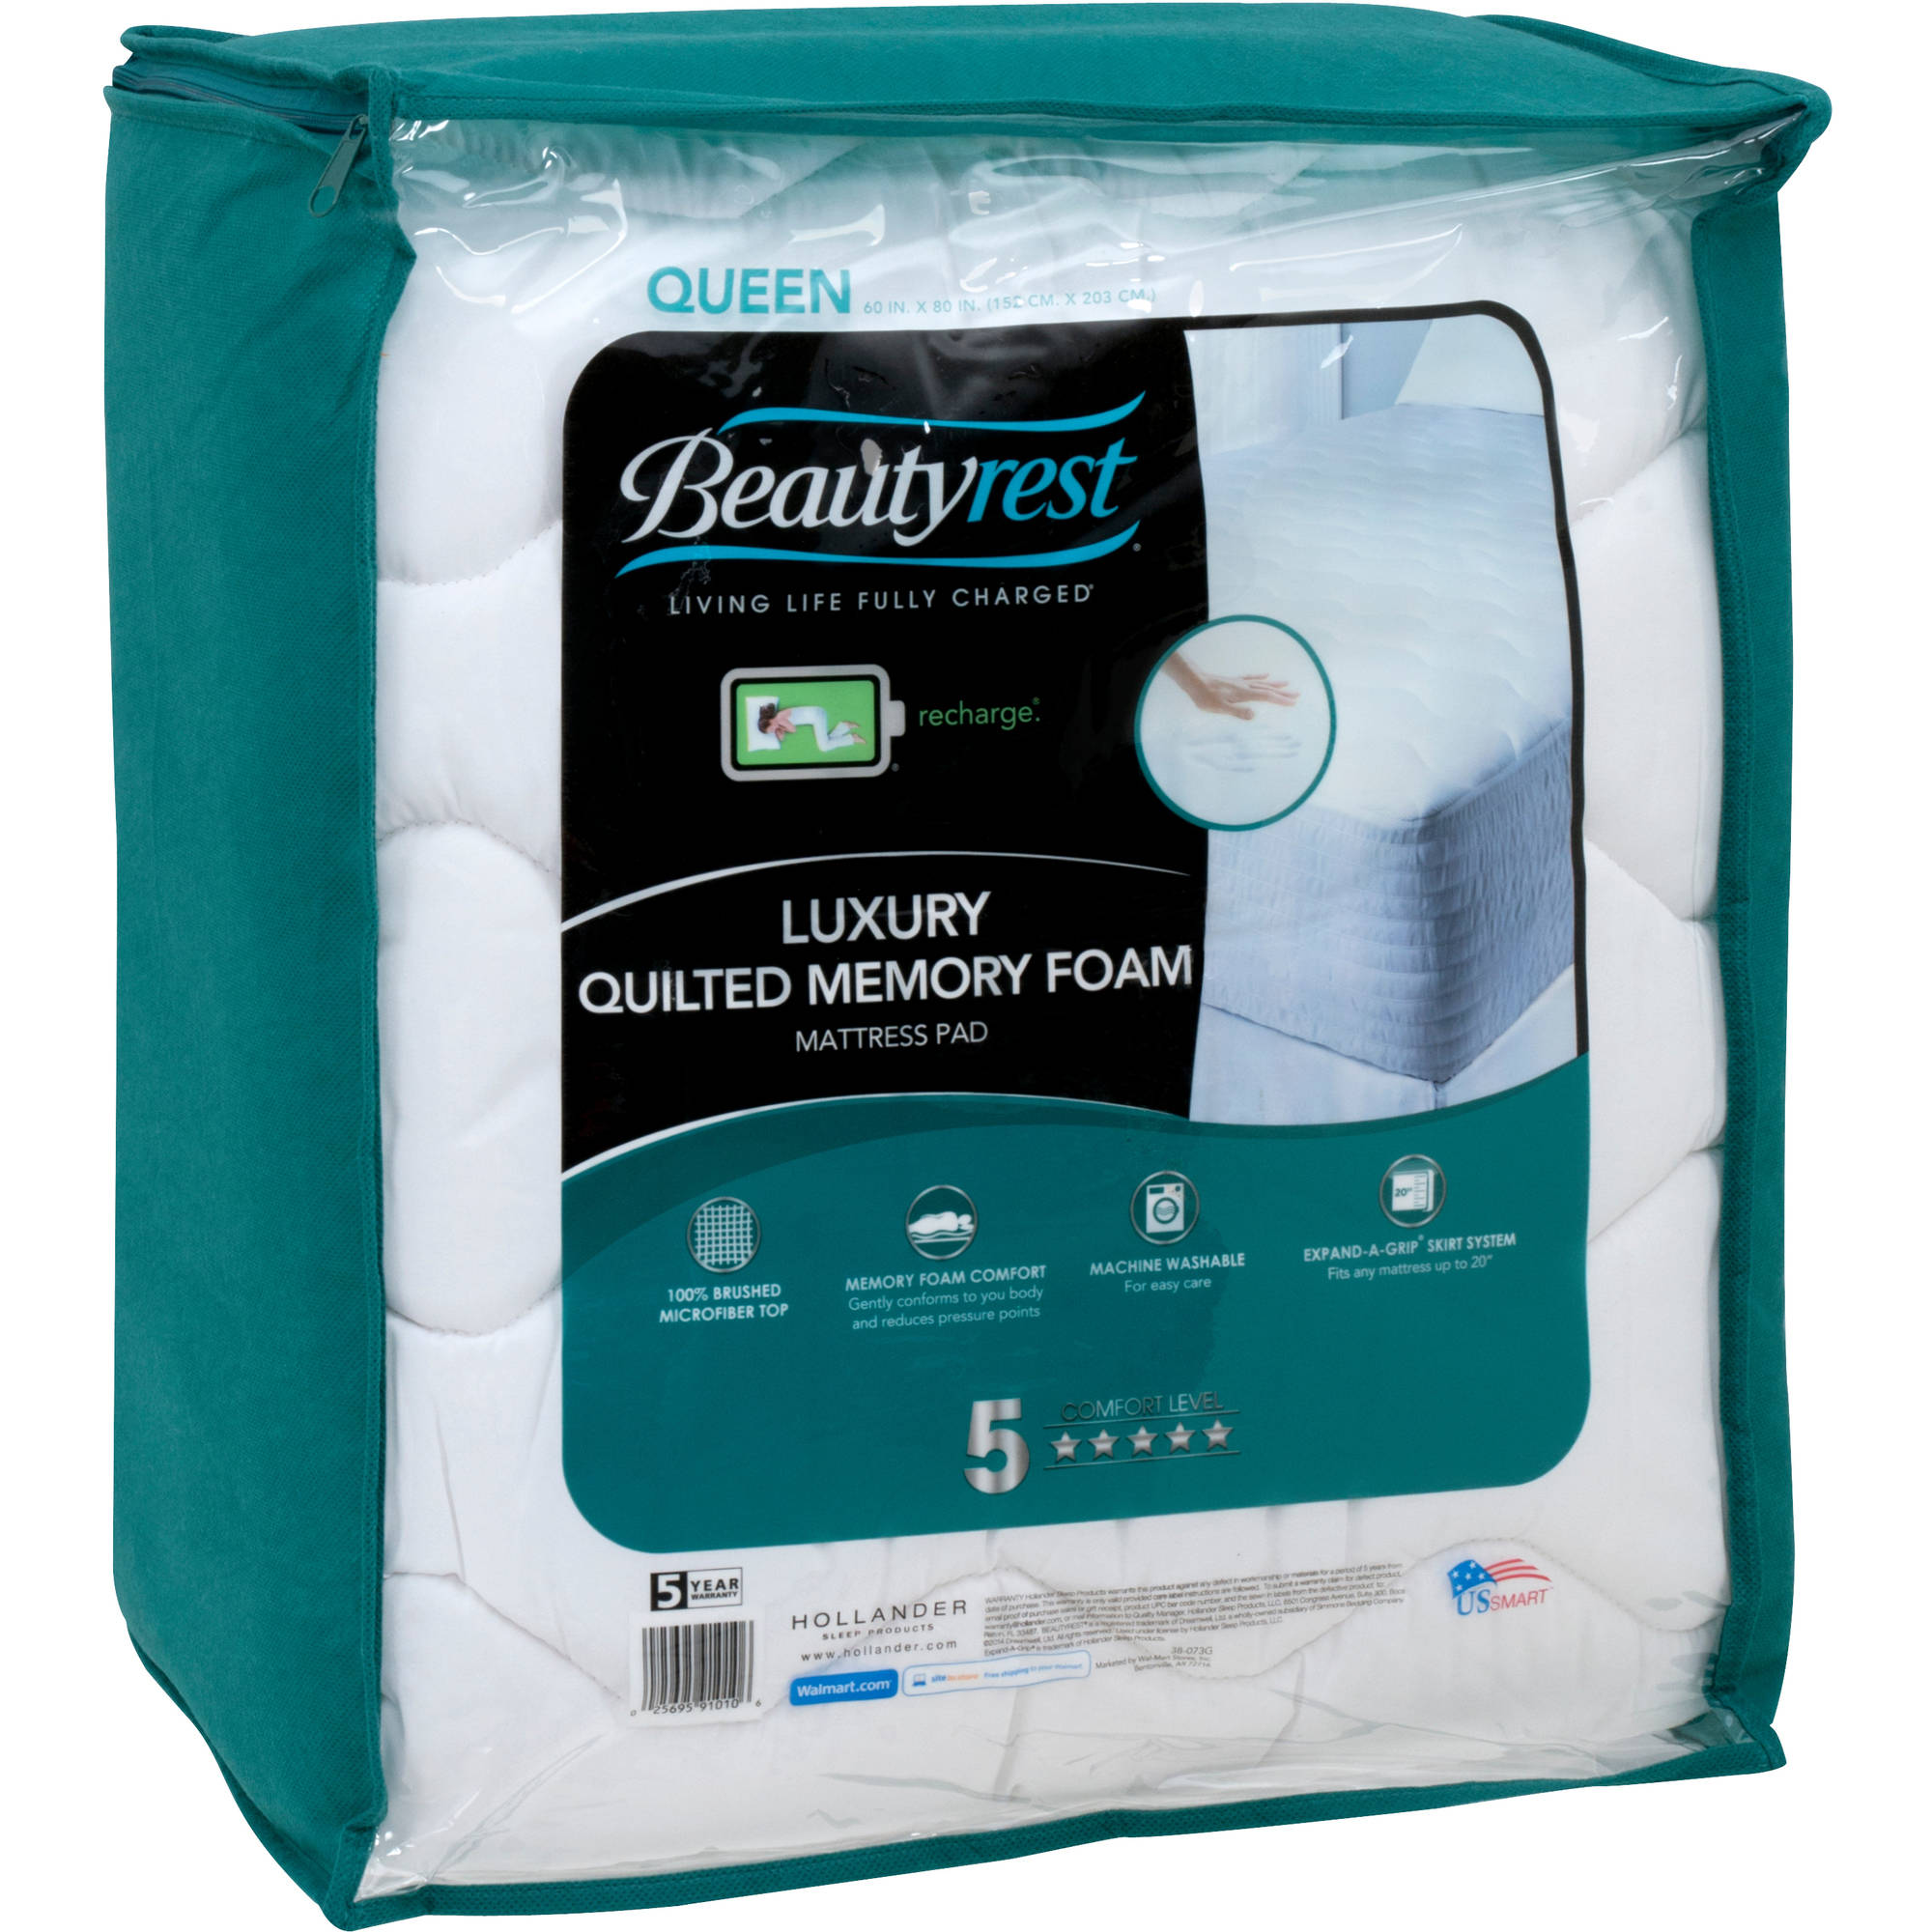 Beautyrest Quilted Memory Foam Mattress Pad in Multiple Sizes